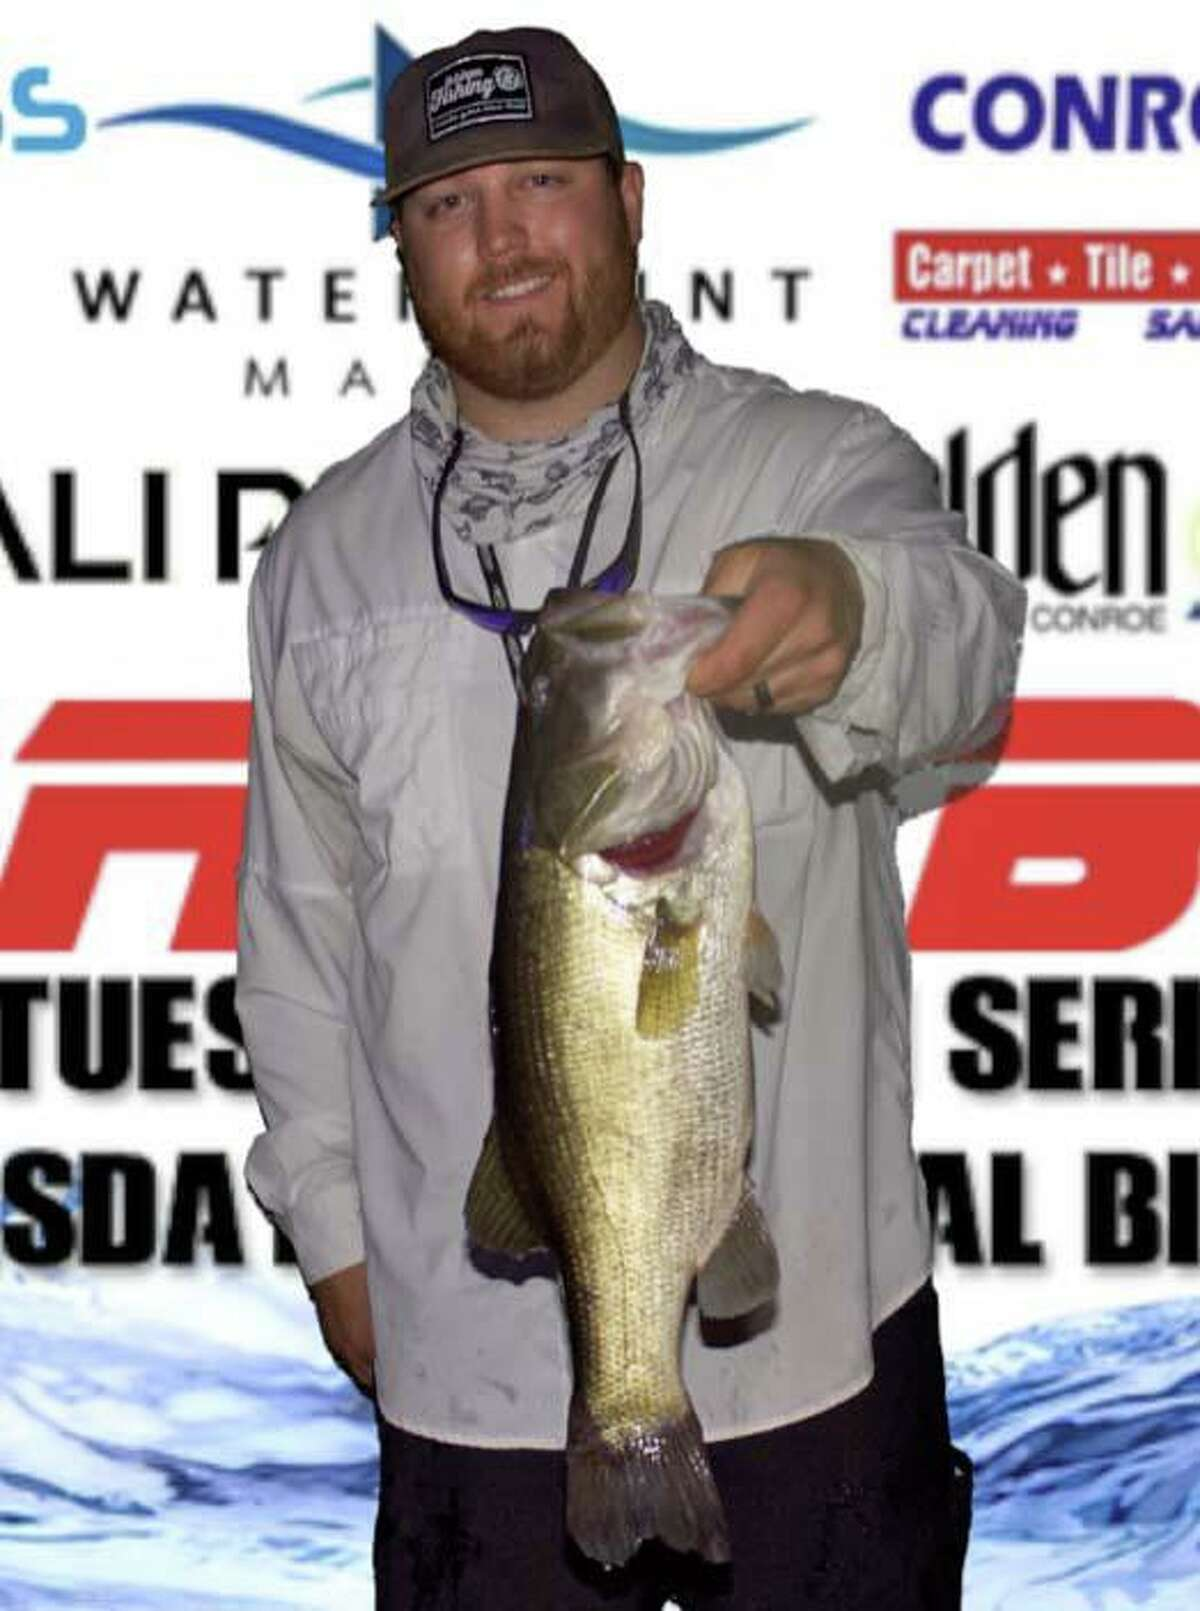 Bo Brown came in second in the CONROEBASS Thursday Big Bass Tournament with a bass weighing 5.66 pounds.